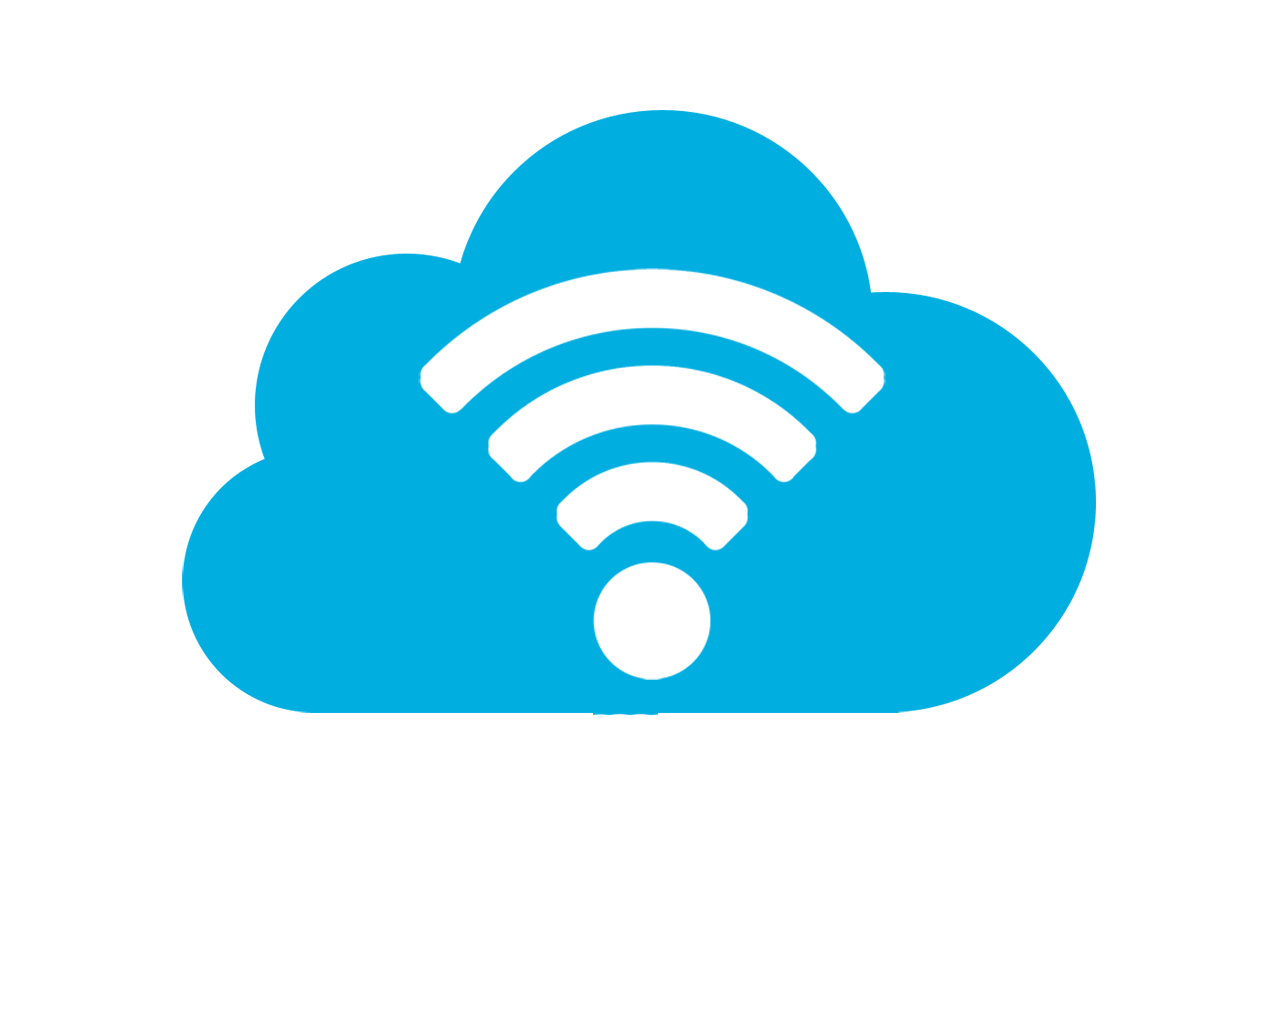 Download Png Icons Cloud image #12858